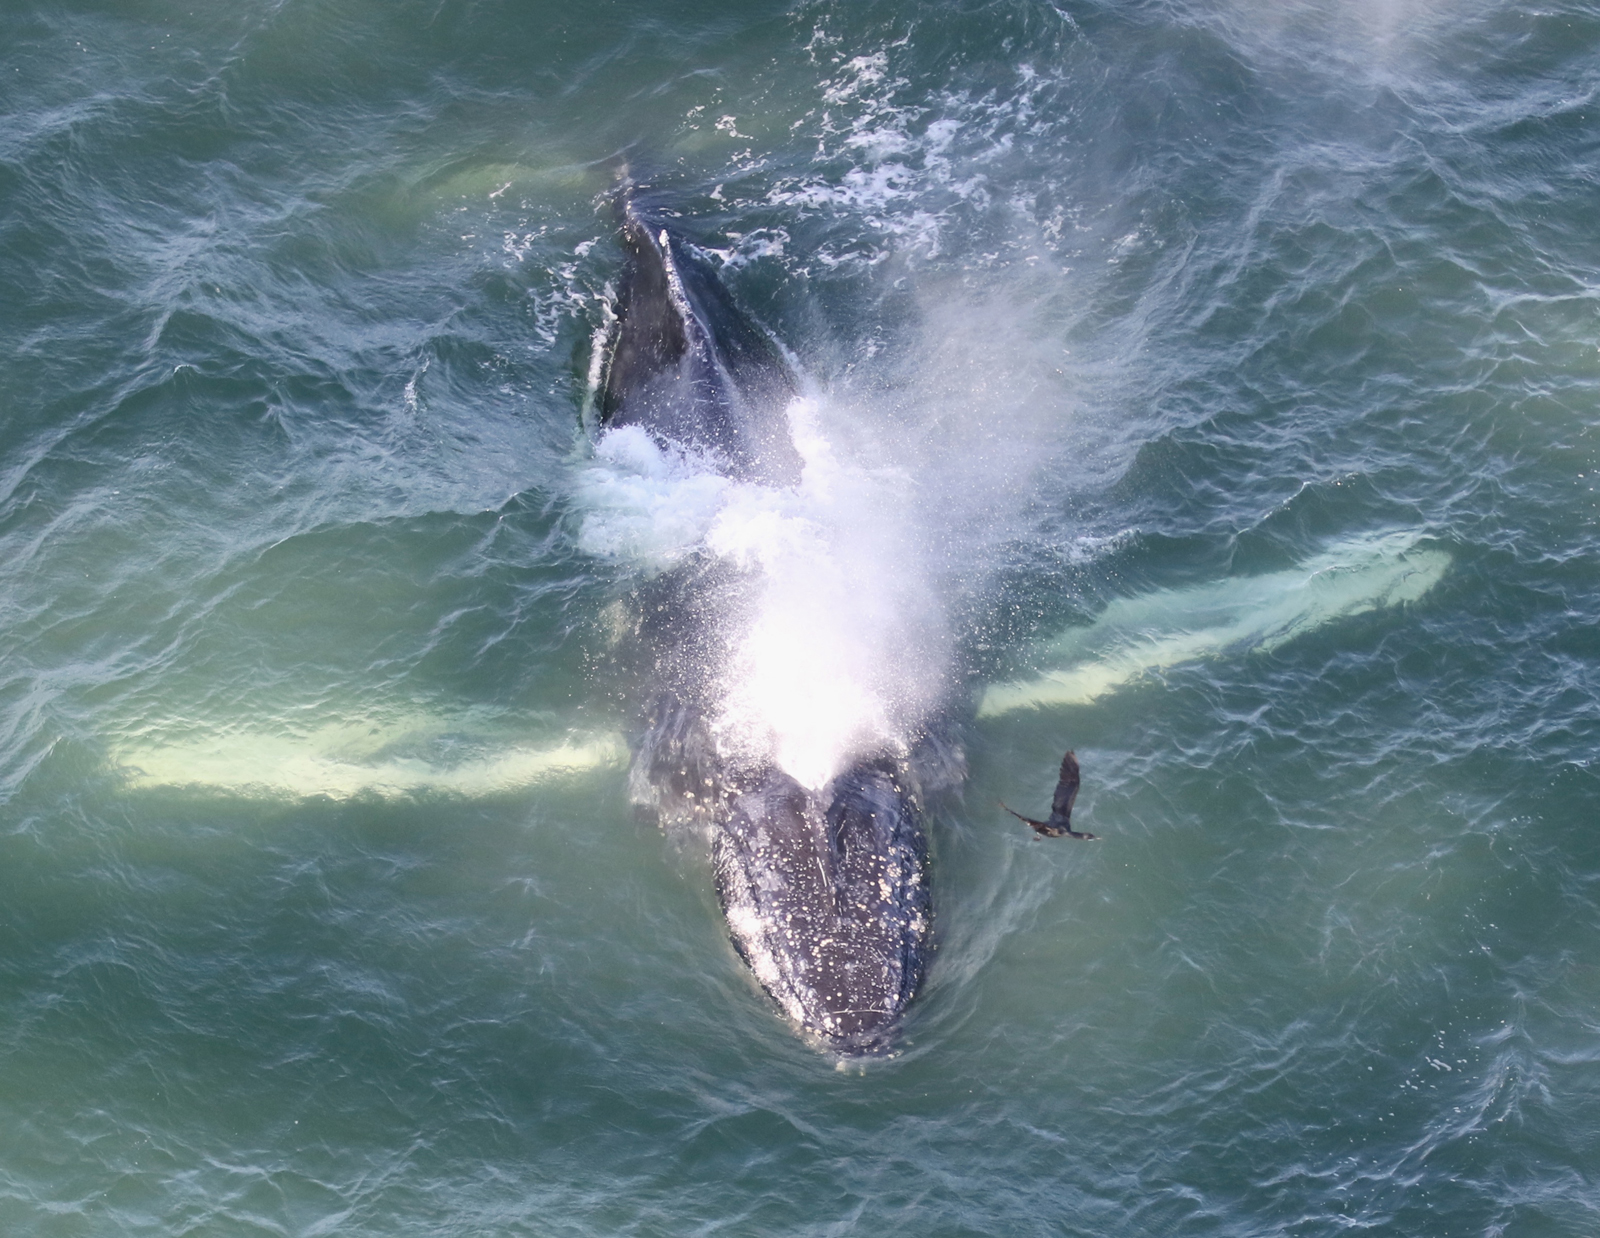 A humpback whale spotted inside San Francisco Bay on May 15 by Bill Keener, a project leader from Golden Gate Cetacean Research.